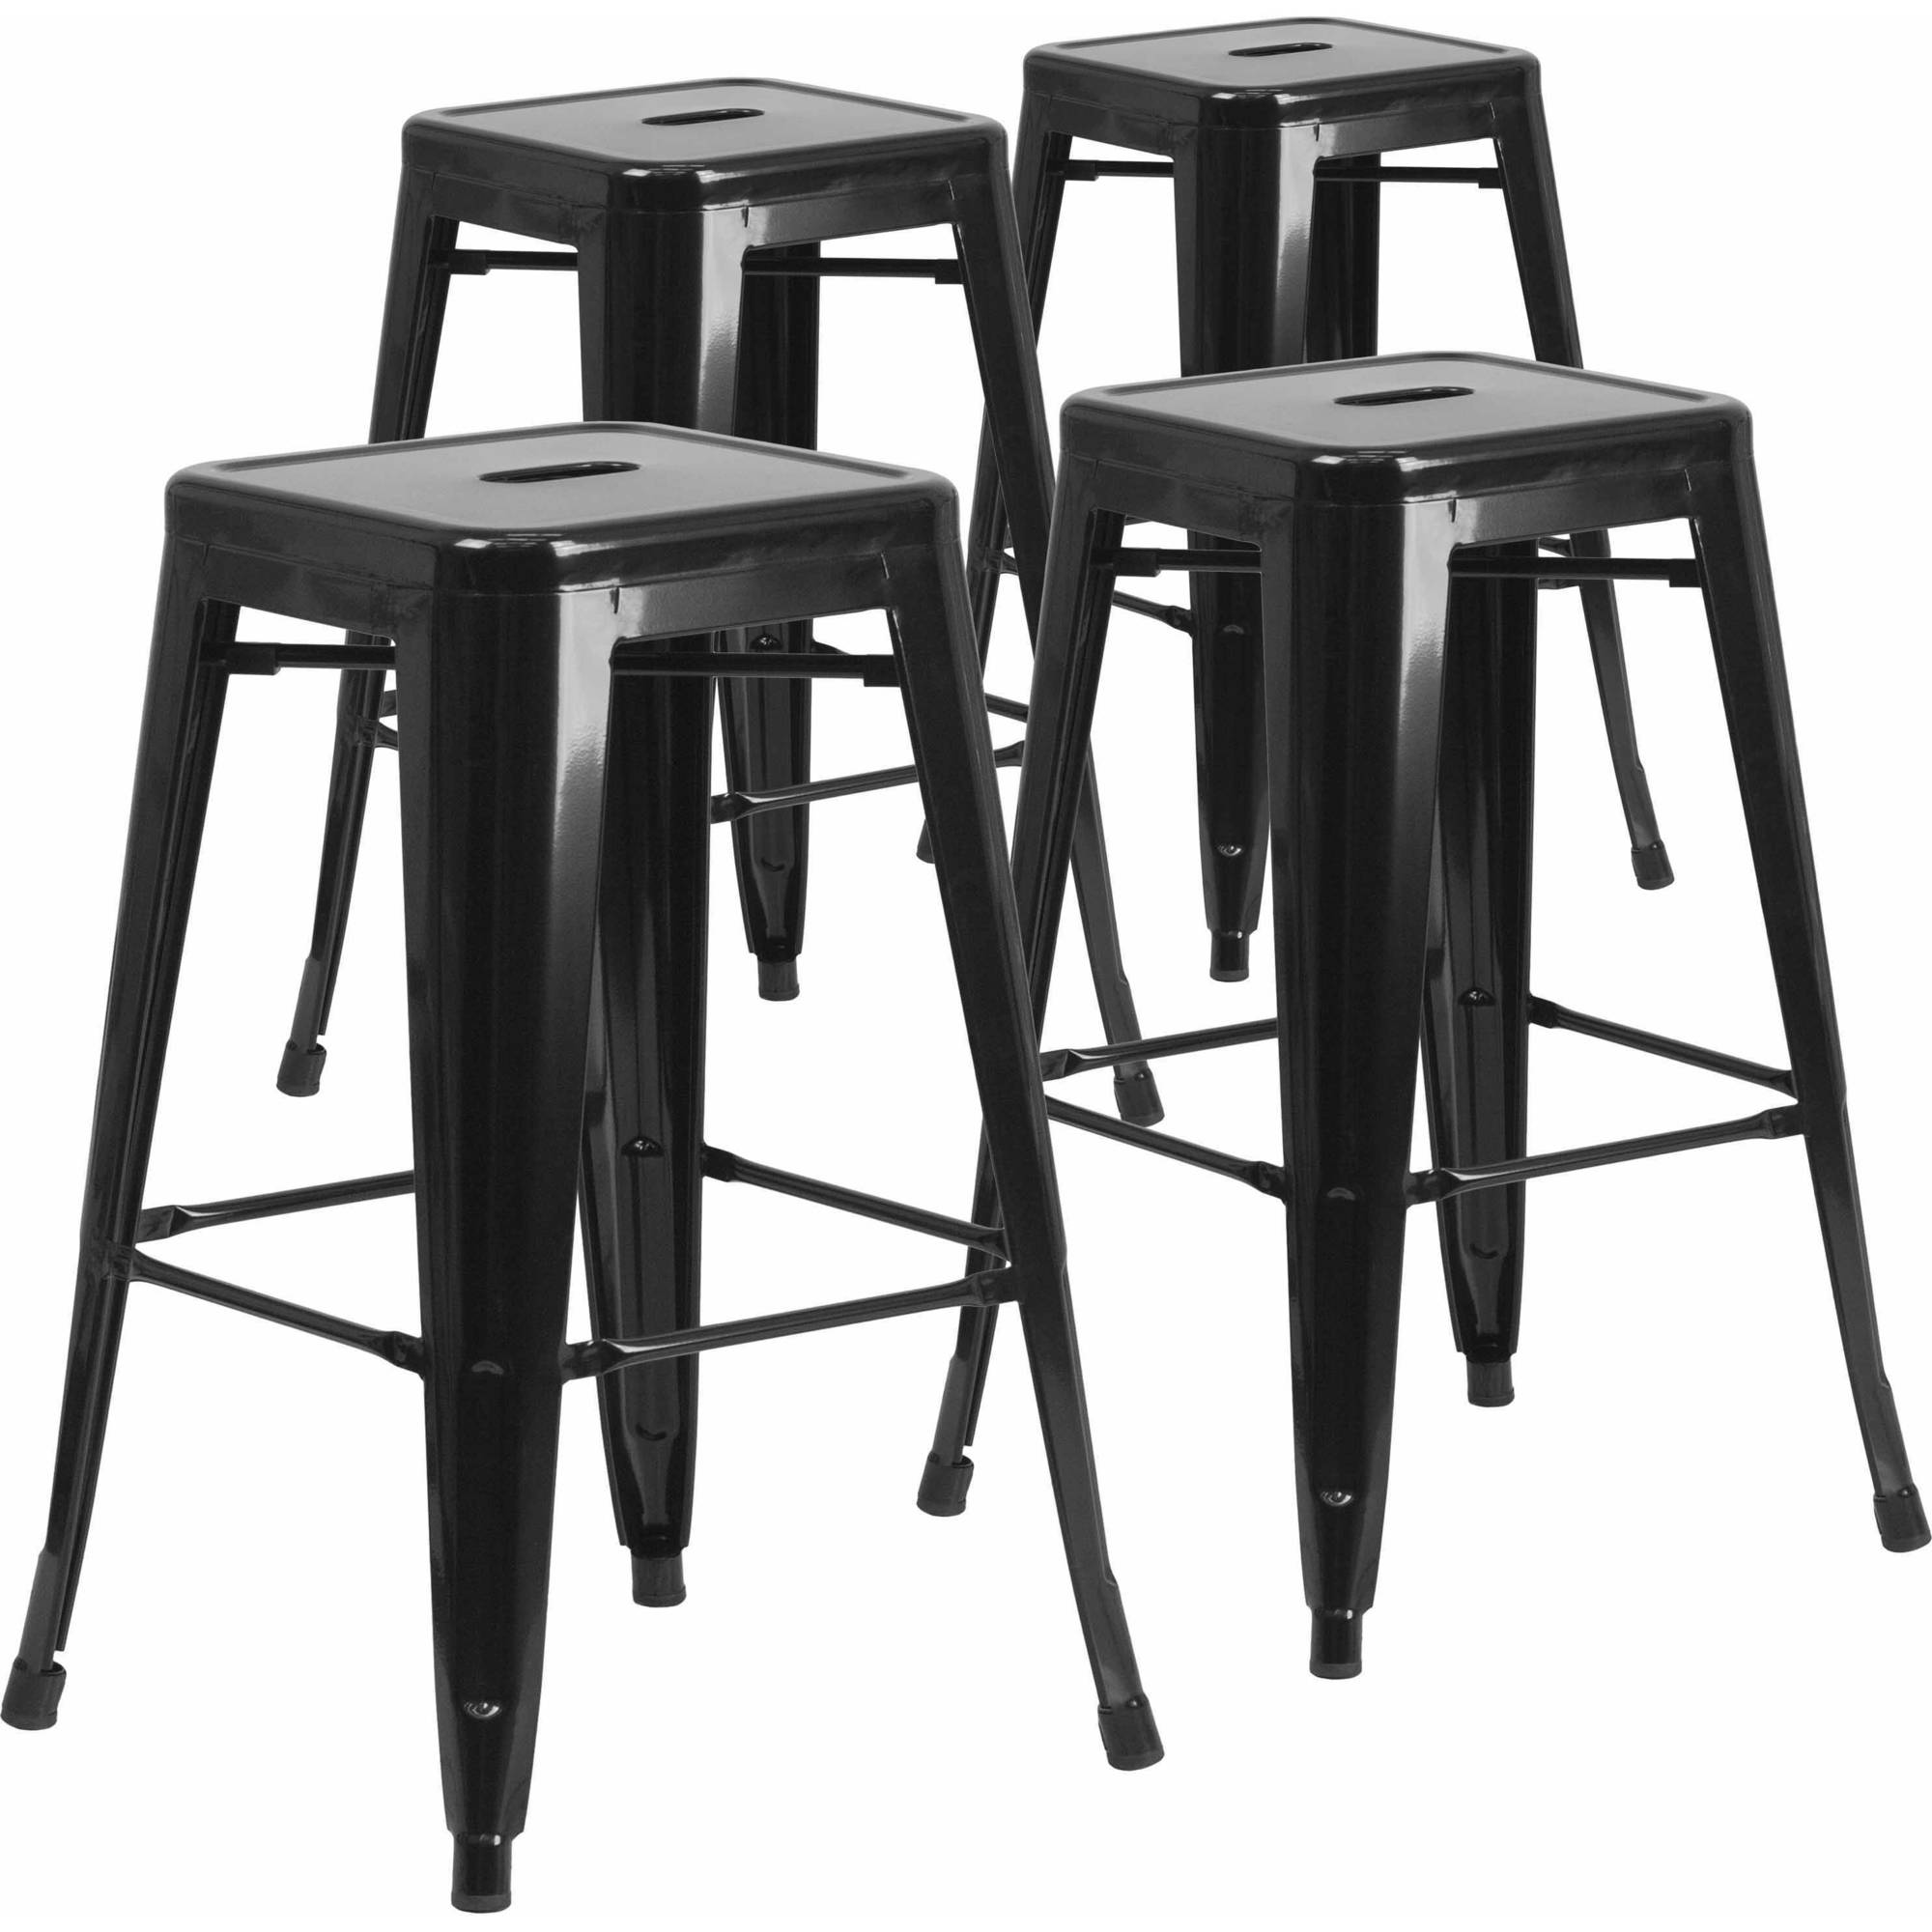 "Mainstays 29"" Ladder Back Black Barstool Multiple Colors"